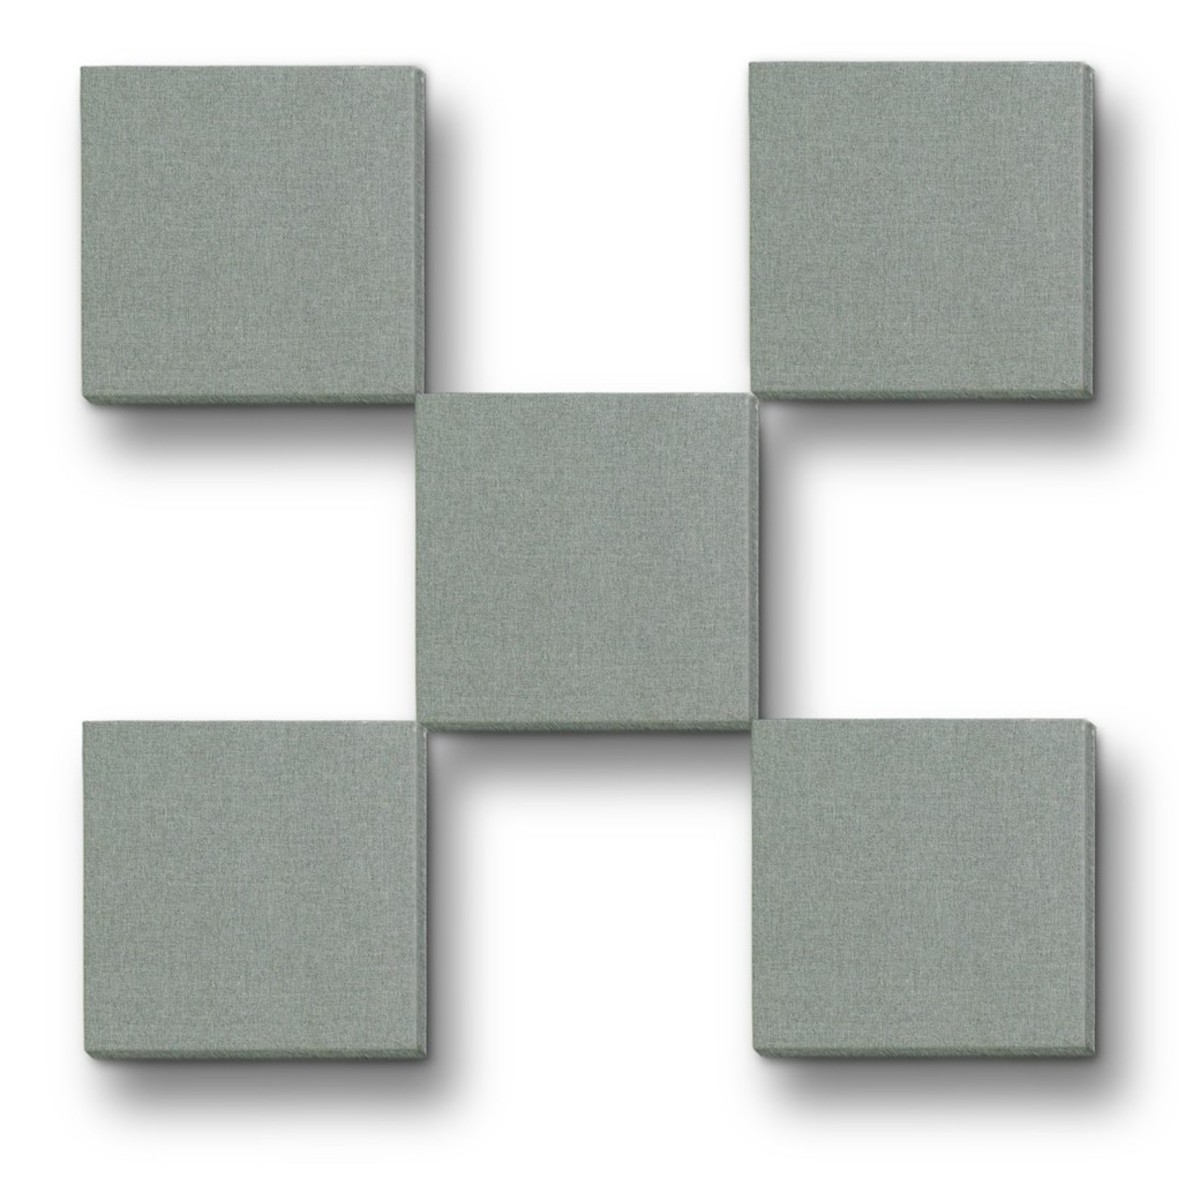 Click to view product details and reviews for Primacoustic Broadway 12 X 12 Scatter Blocks 1 Grey.